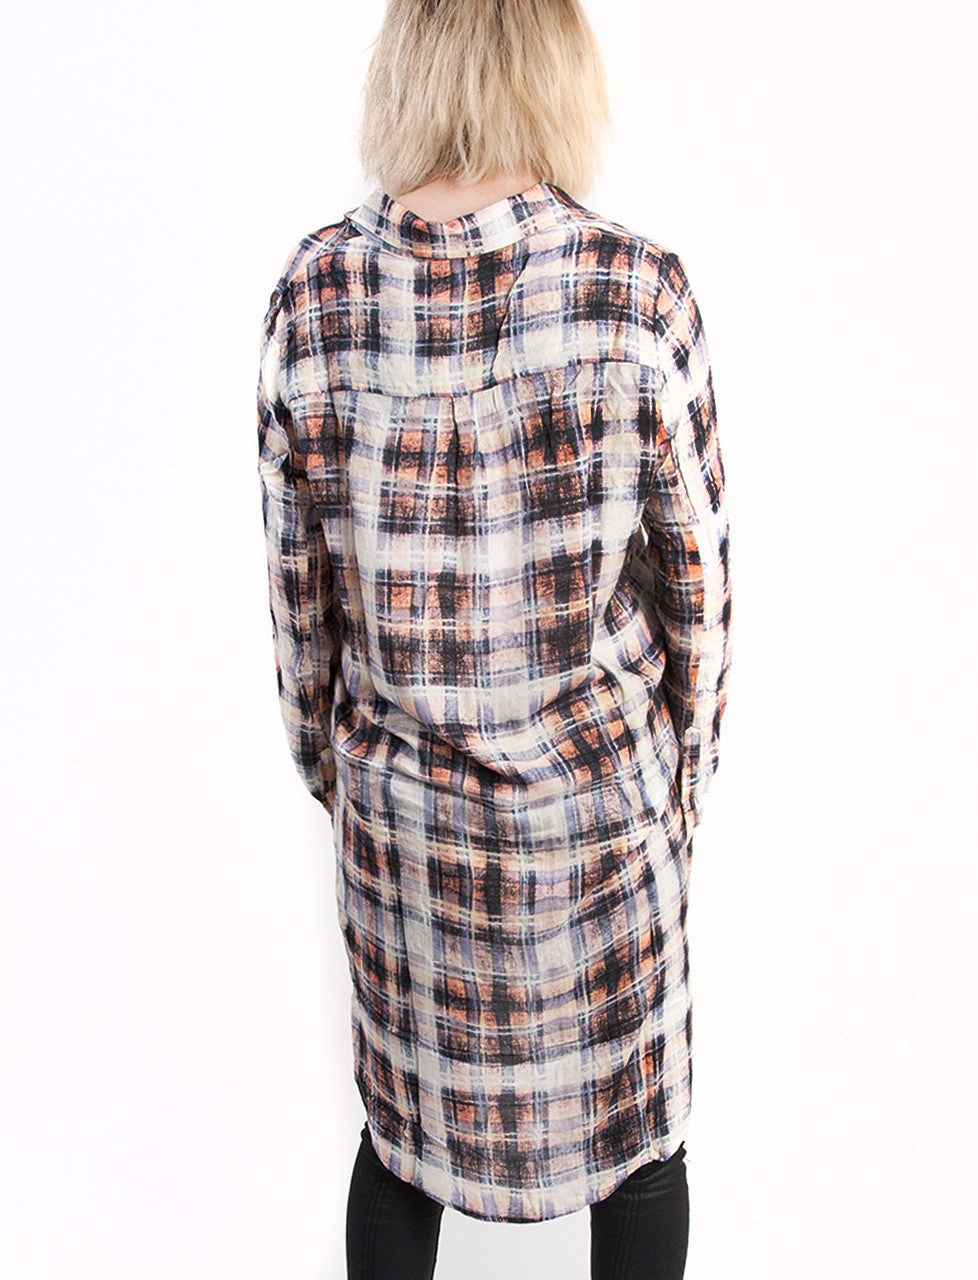 evil twin the label faded glory longline shirt dress, high low shirt dress, plaid shirt plaid back view